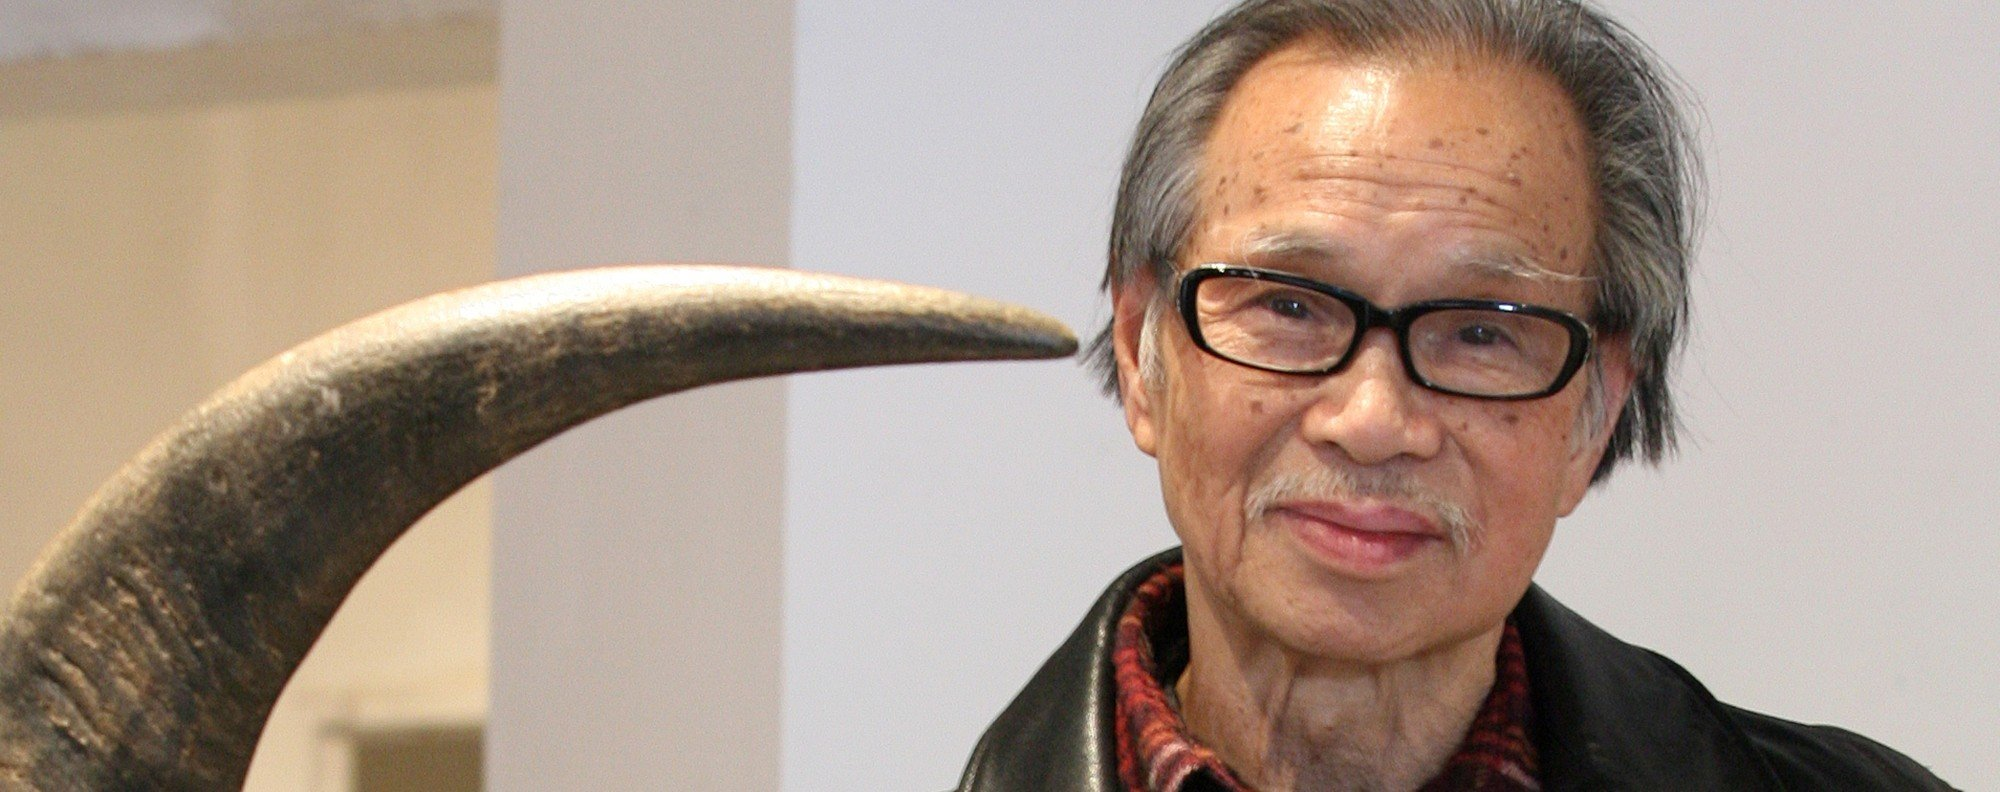 Ha Bik-chuen with one of his sculptures in January 2009.